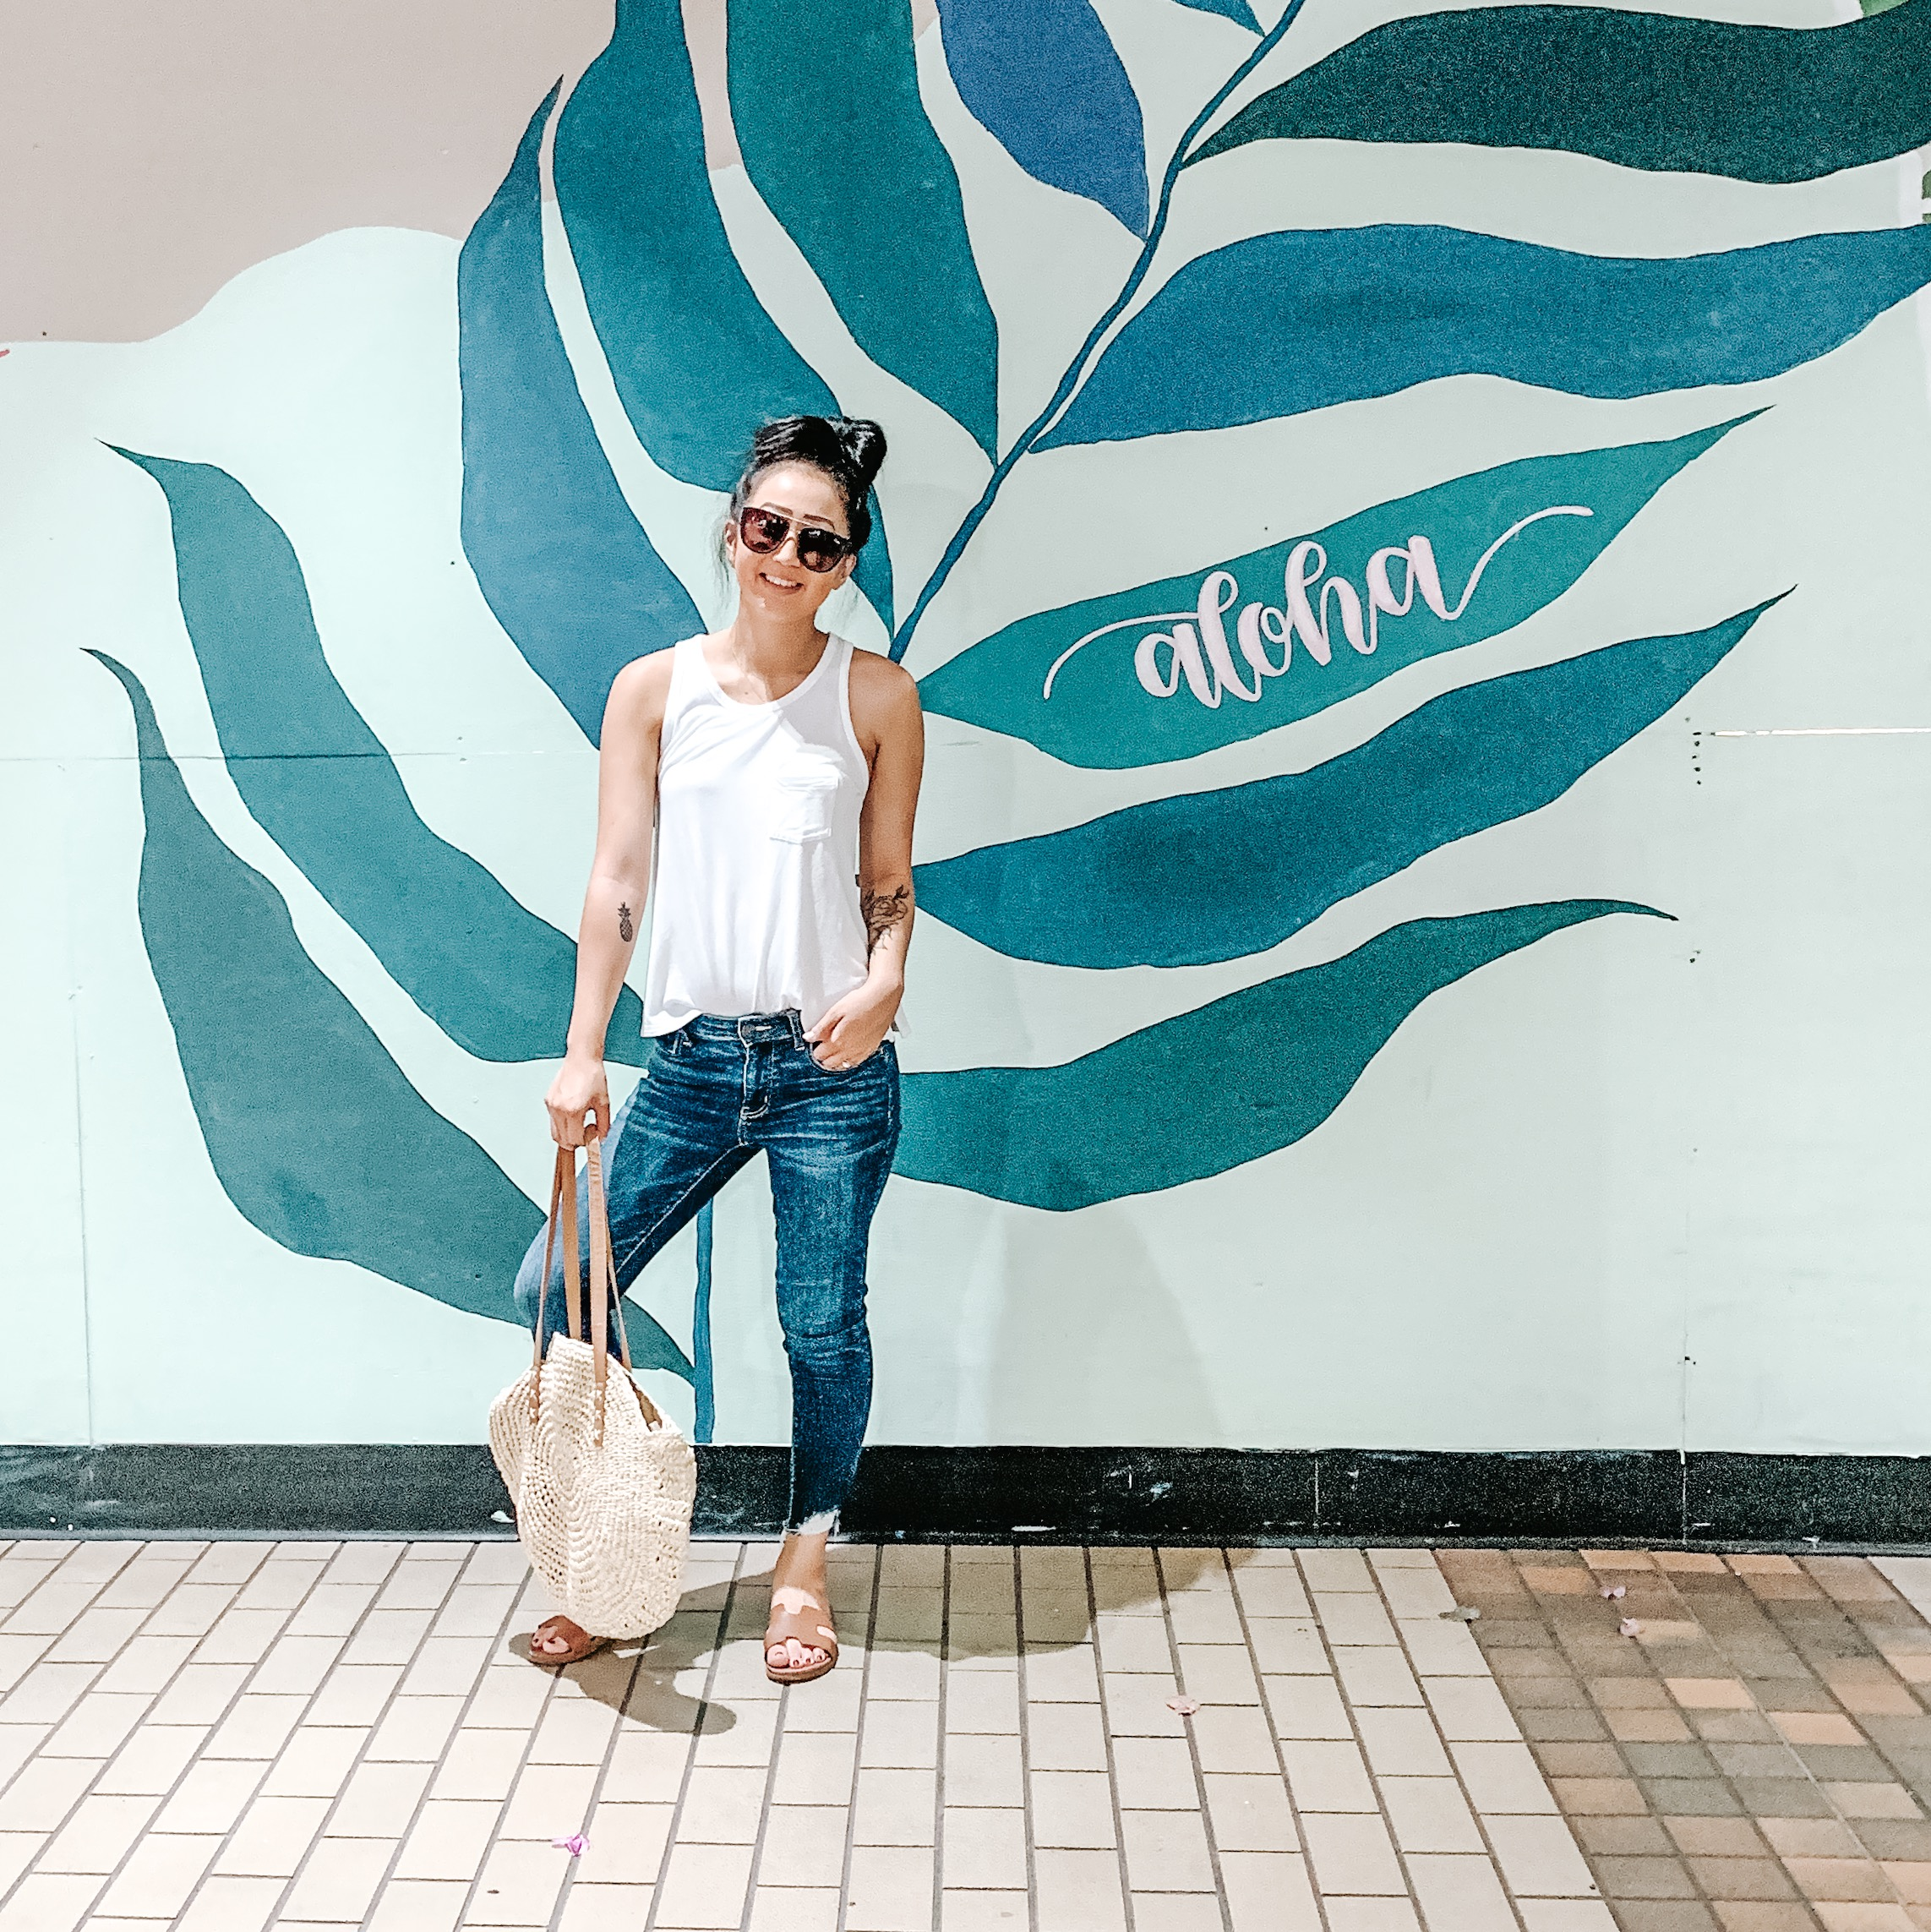 Ala Moana Center - Okay, yes it's a mall but hear me out. These cute murals are in the parking garage and a lot of the big name stores have super 'gram worthy accents. Keep your eyes peeled, there are Insta-worthy opportunities everywhere!